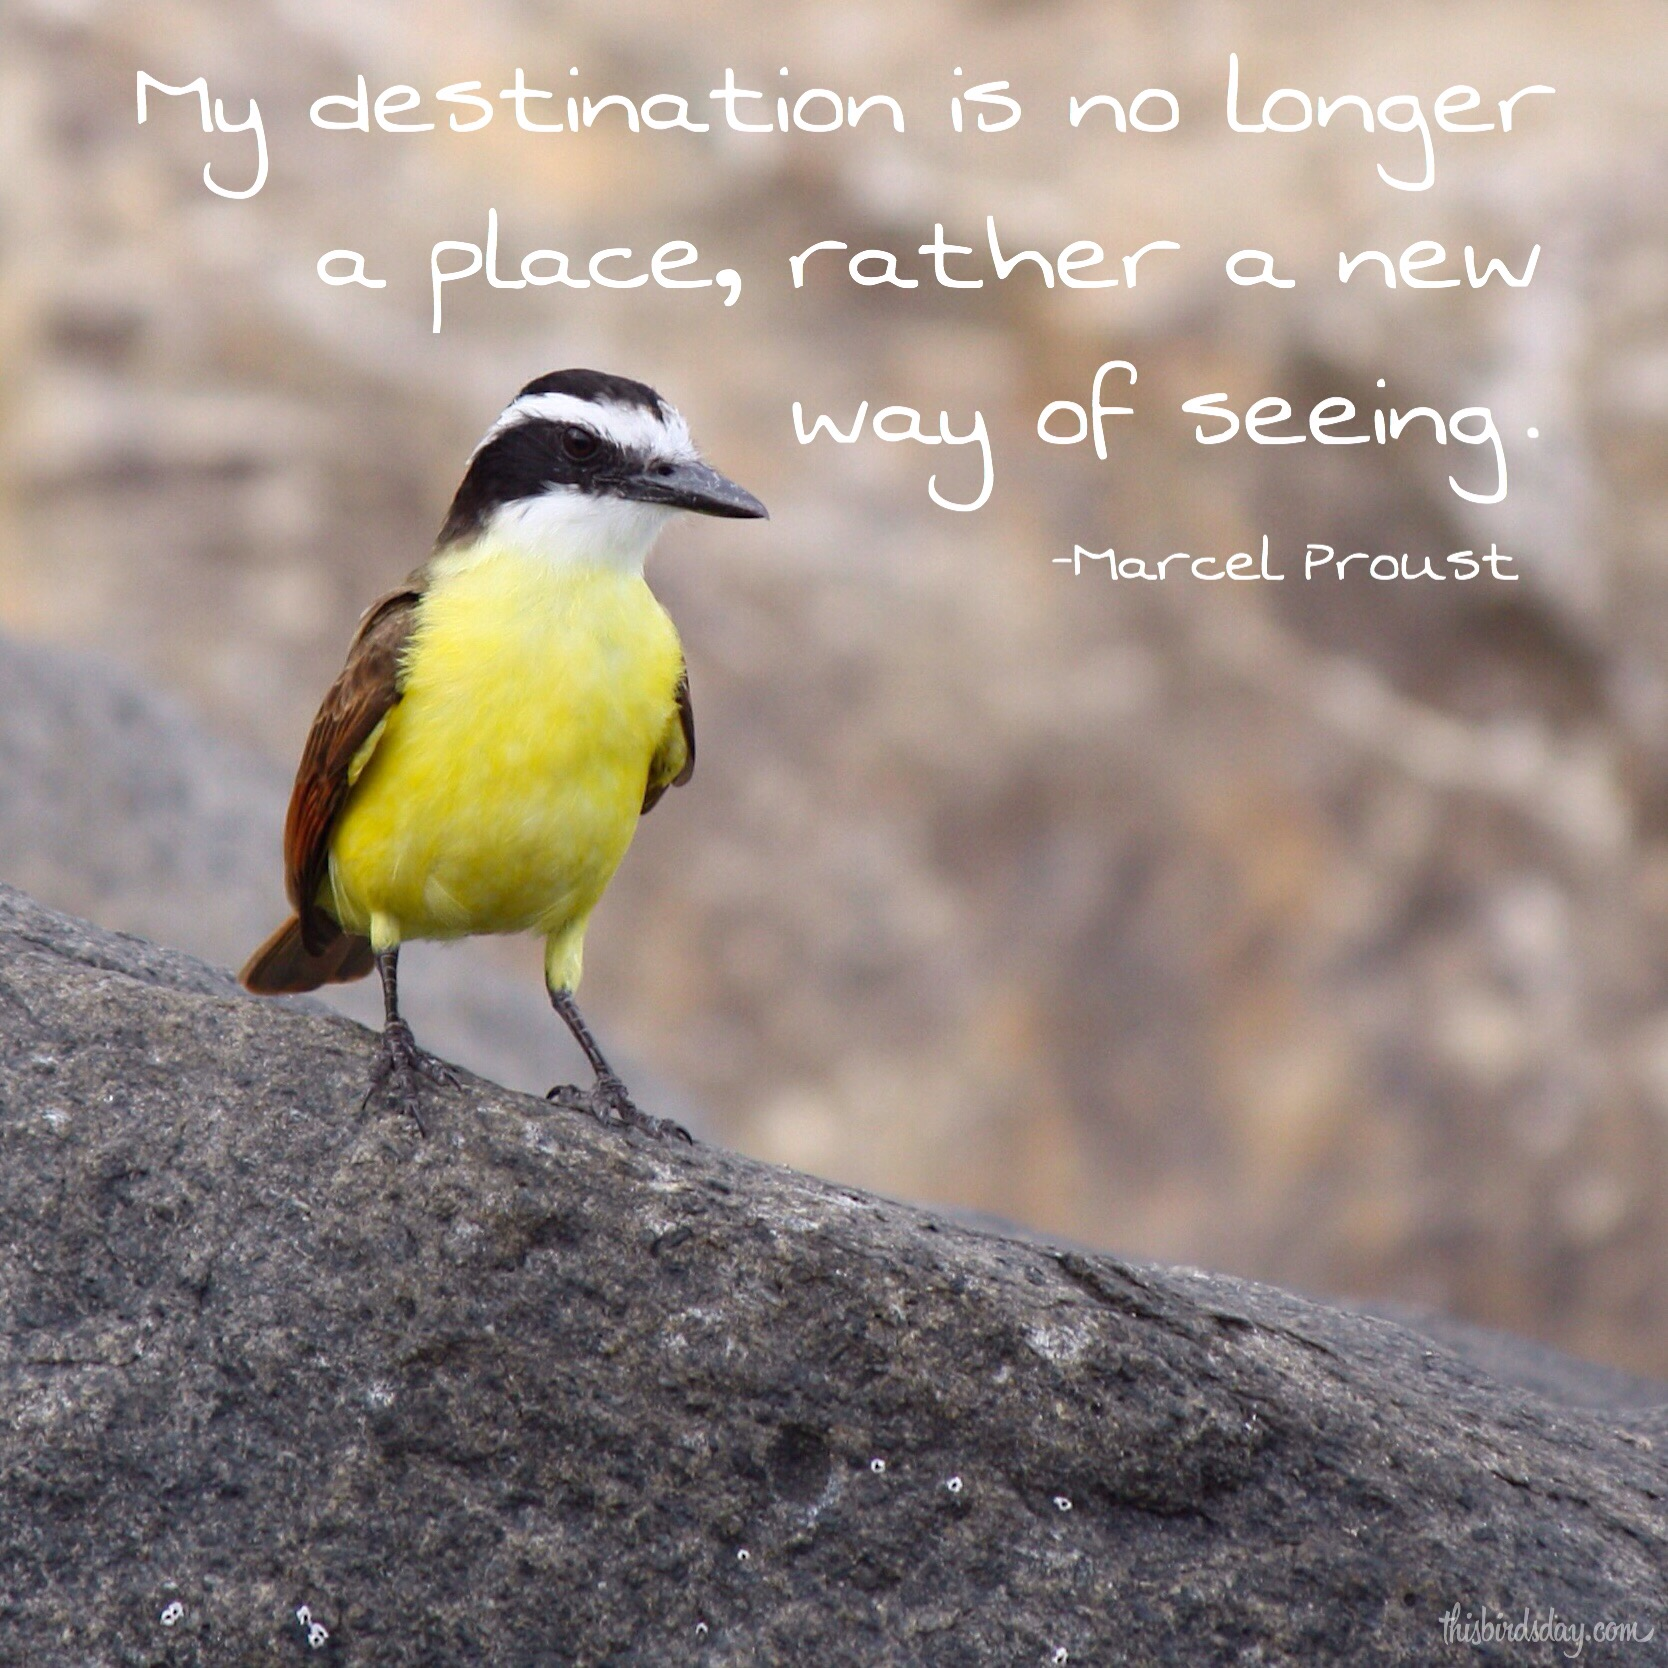 """""""My destination is no longer a place, rather a new way of seeing."""" Marcel Proust quote. Photo copyright Sheri Landry"""